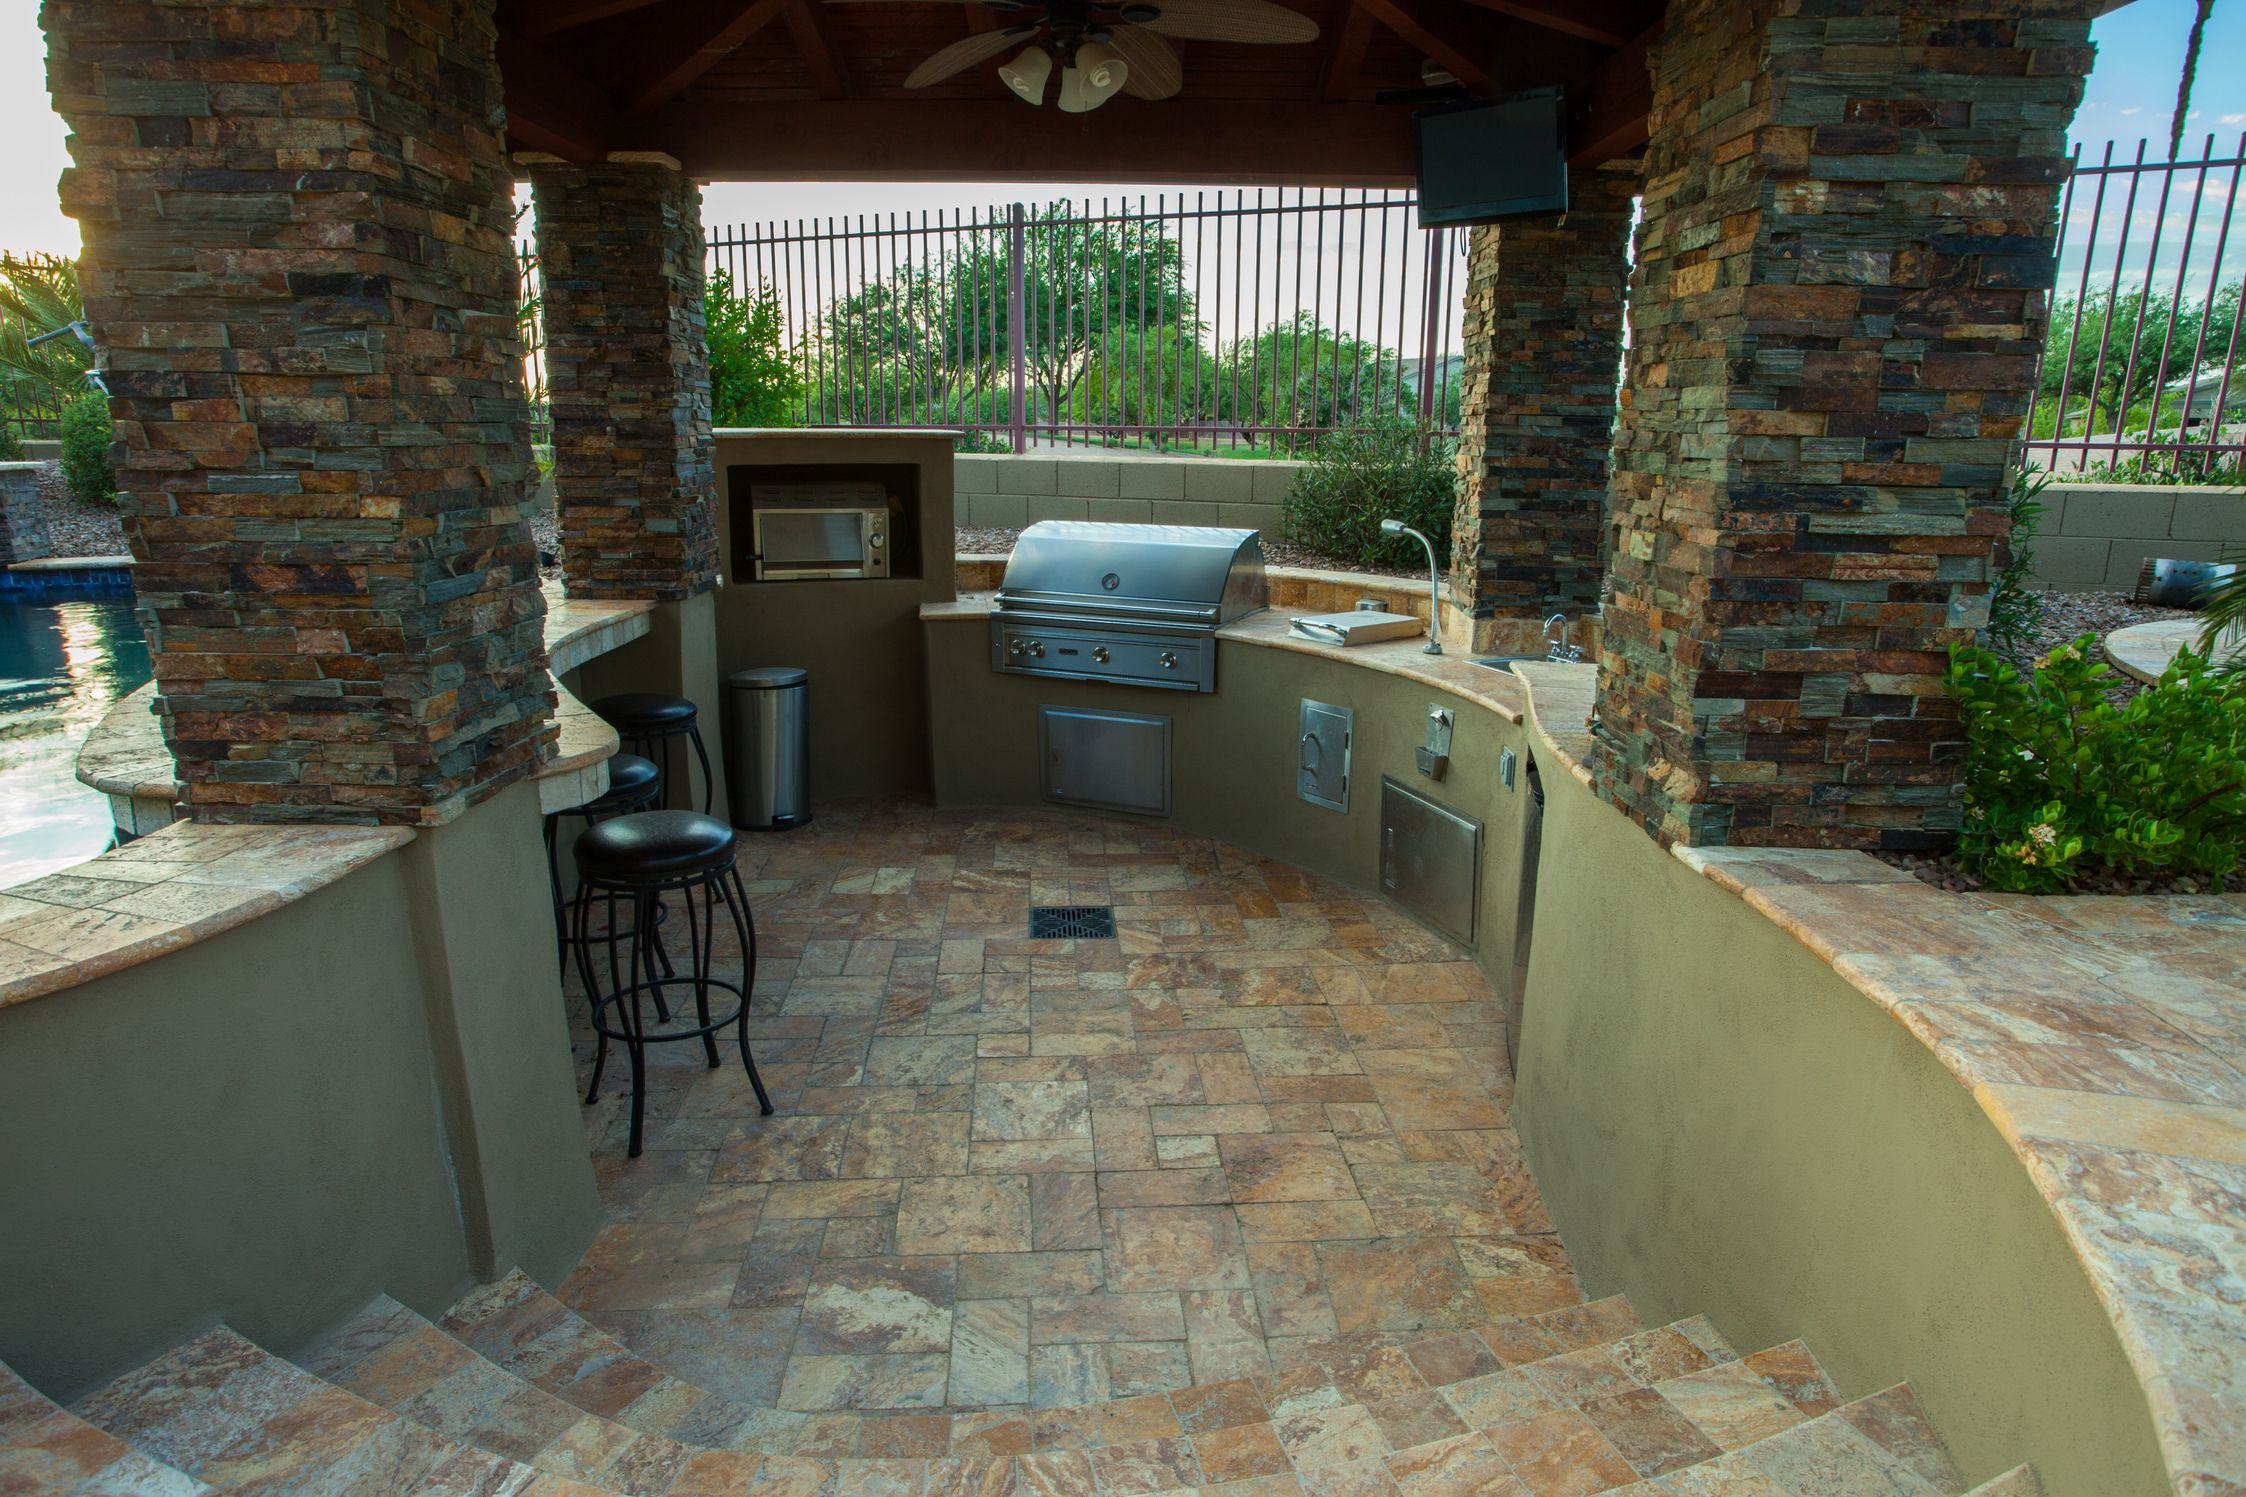 Sunken Outdoor Kitchen Attached To Swimming Pool With Swim Up Bar Project By Aquienta Pools And Landscaping Sunken Patio Backyard Pool Fire Pit Seating Area